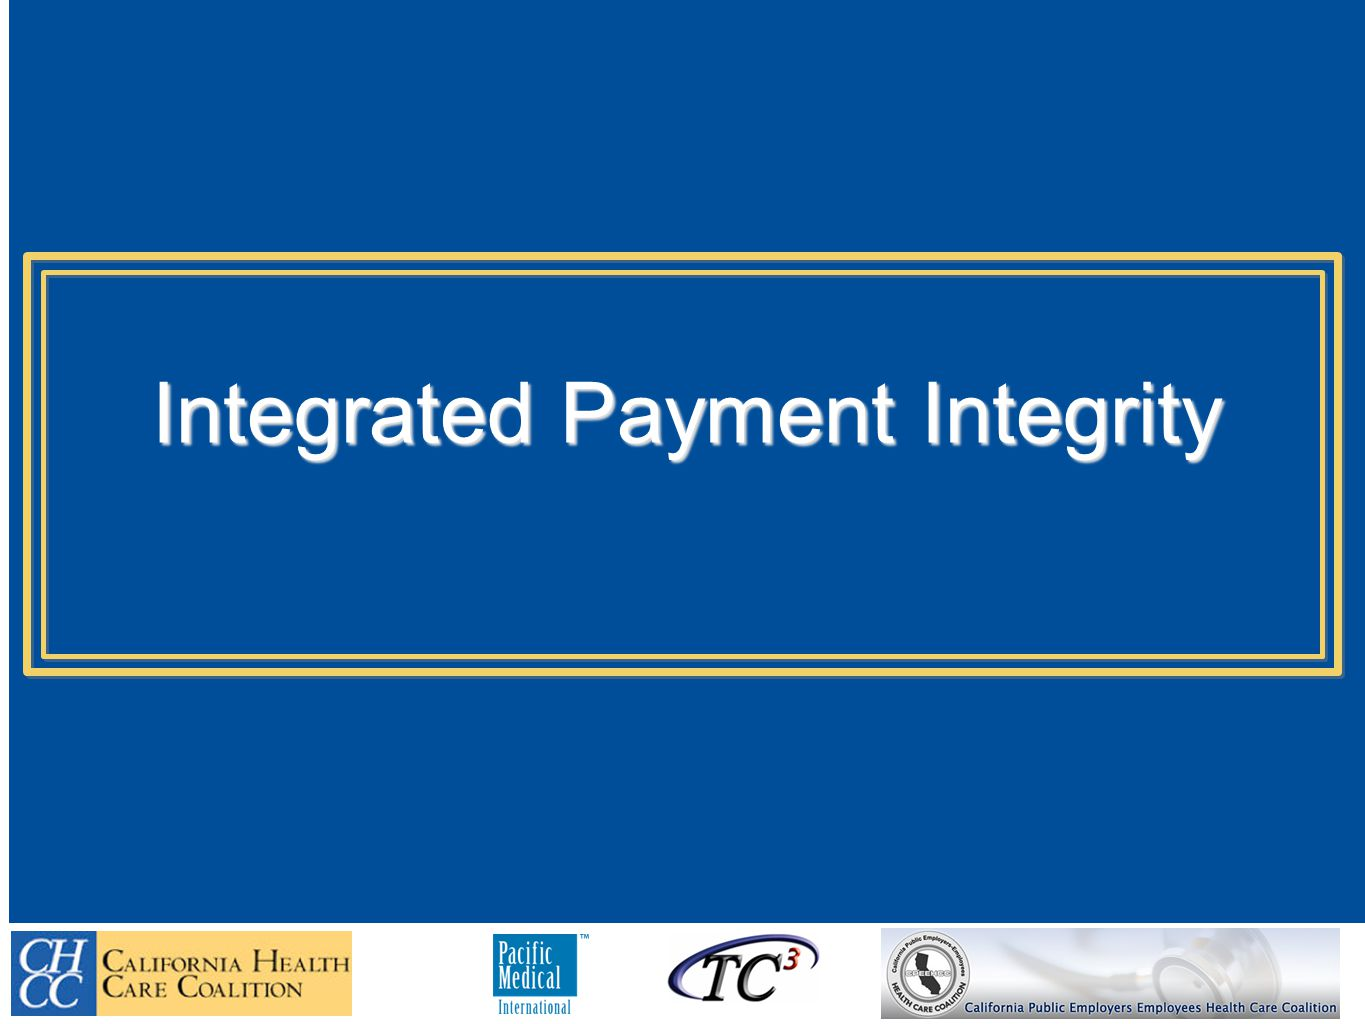 Integrated Payment Integrity